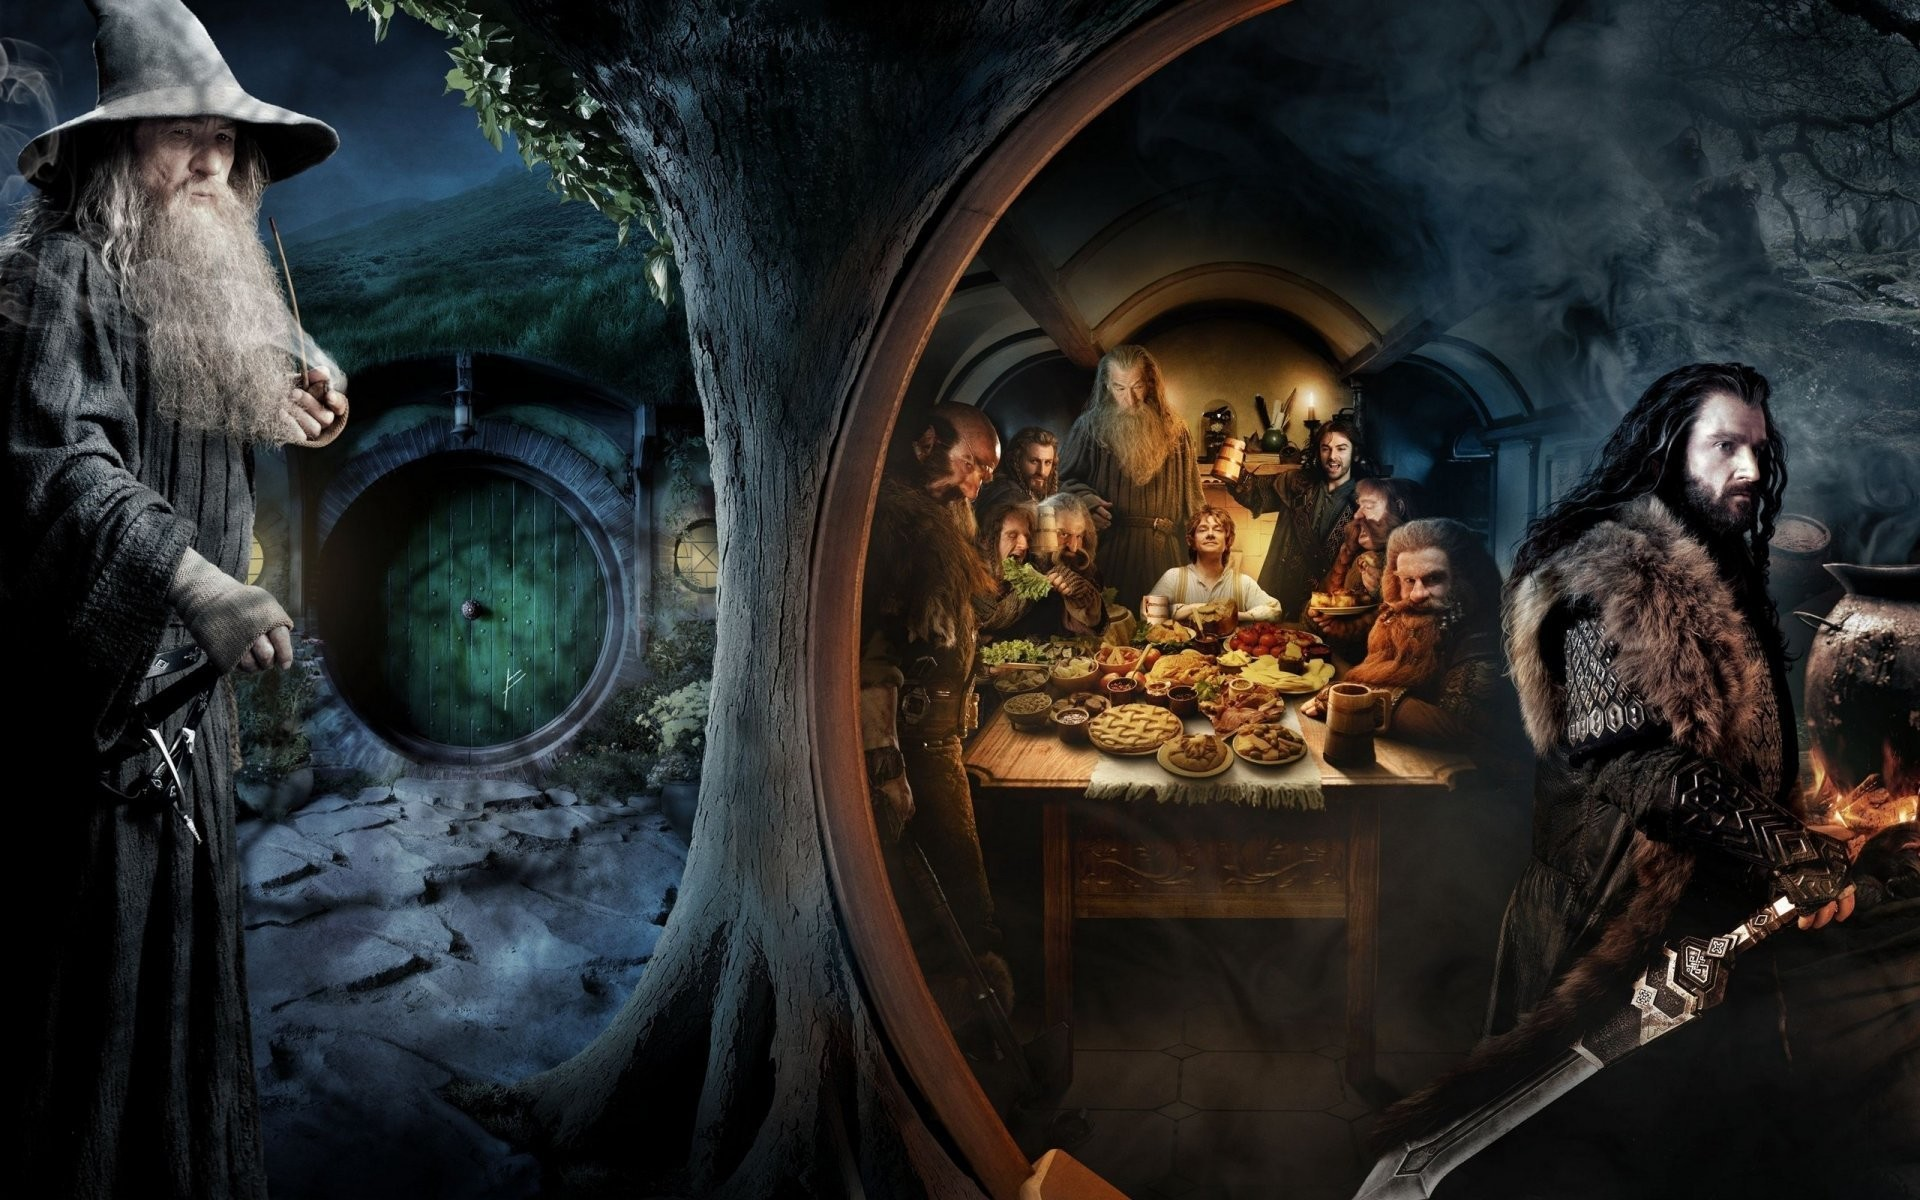 the hobbit an unexpected journey hobbies unexpected journey gandalf bilbo  torin gnomes hobbiton br bag end